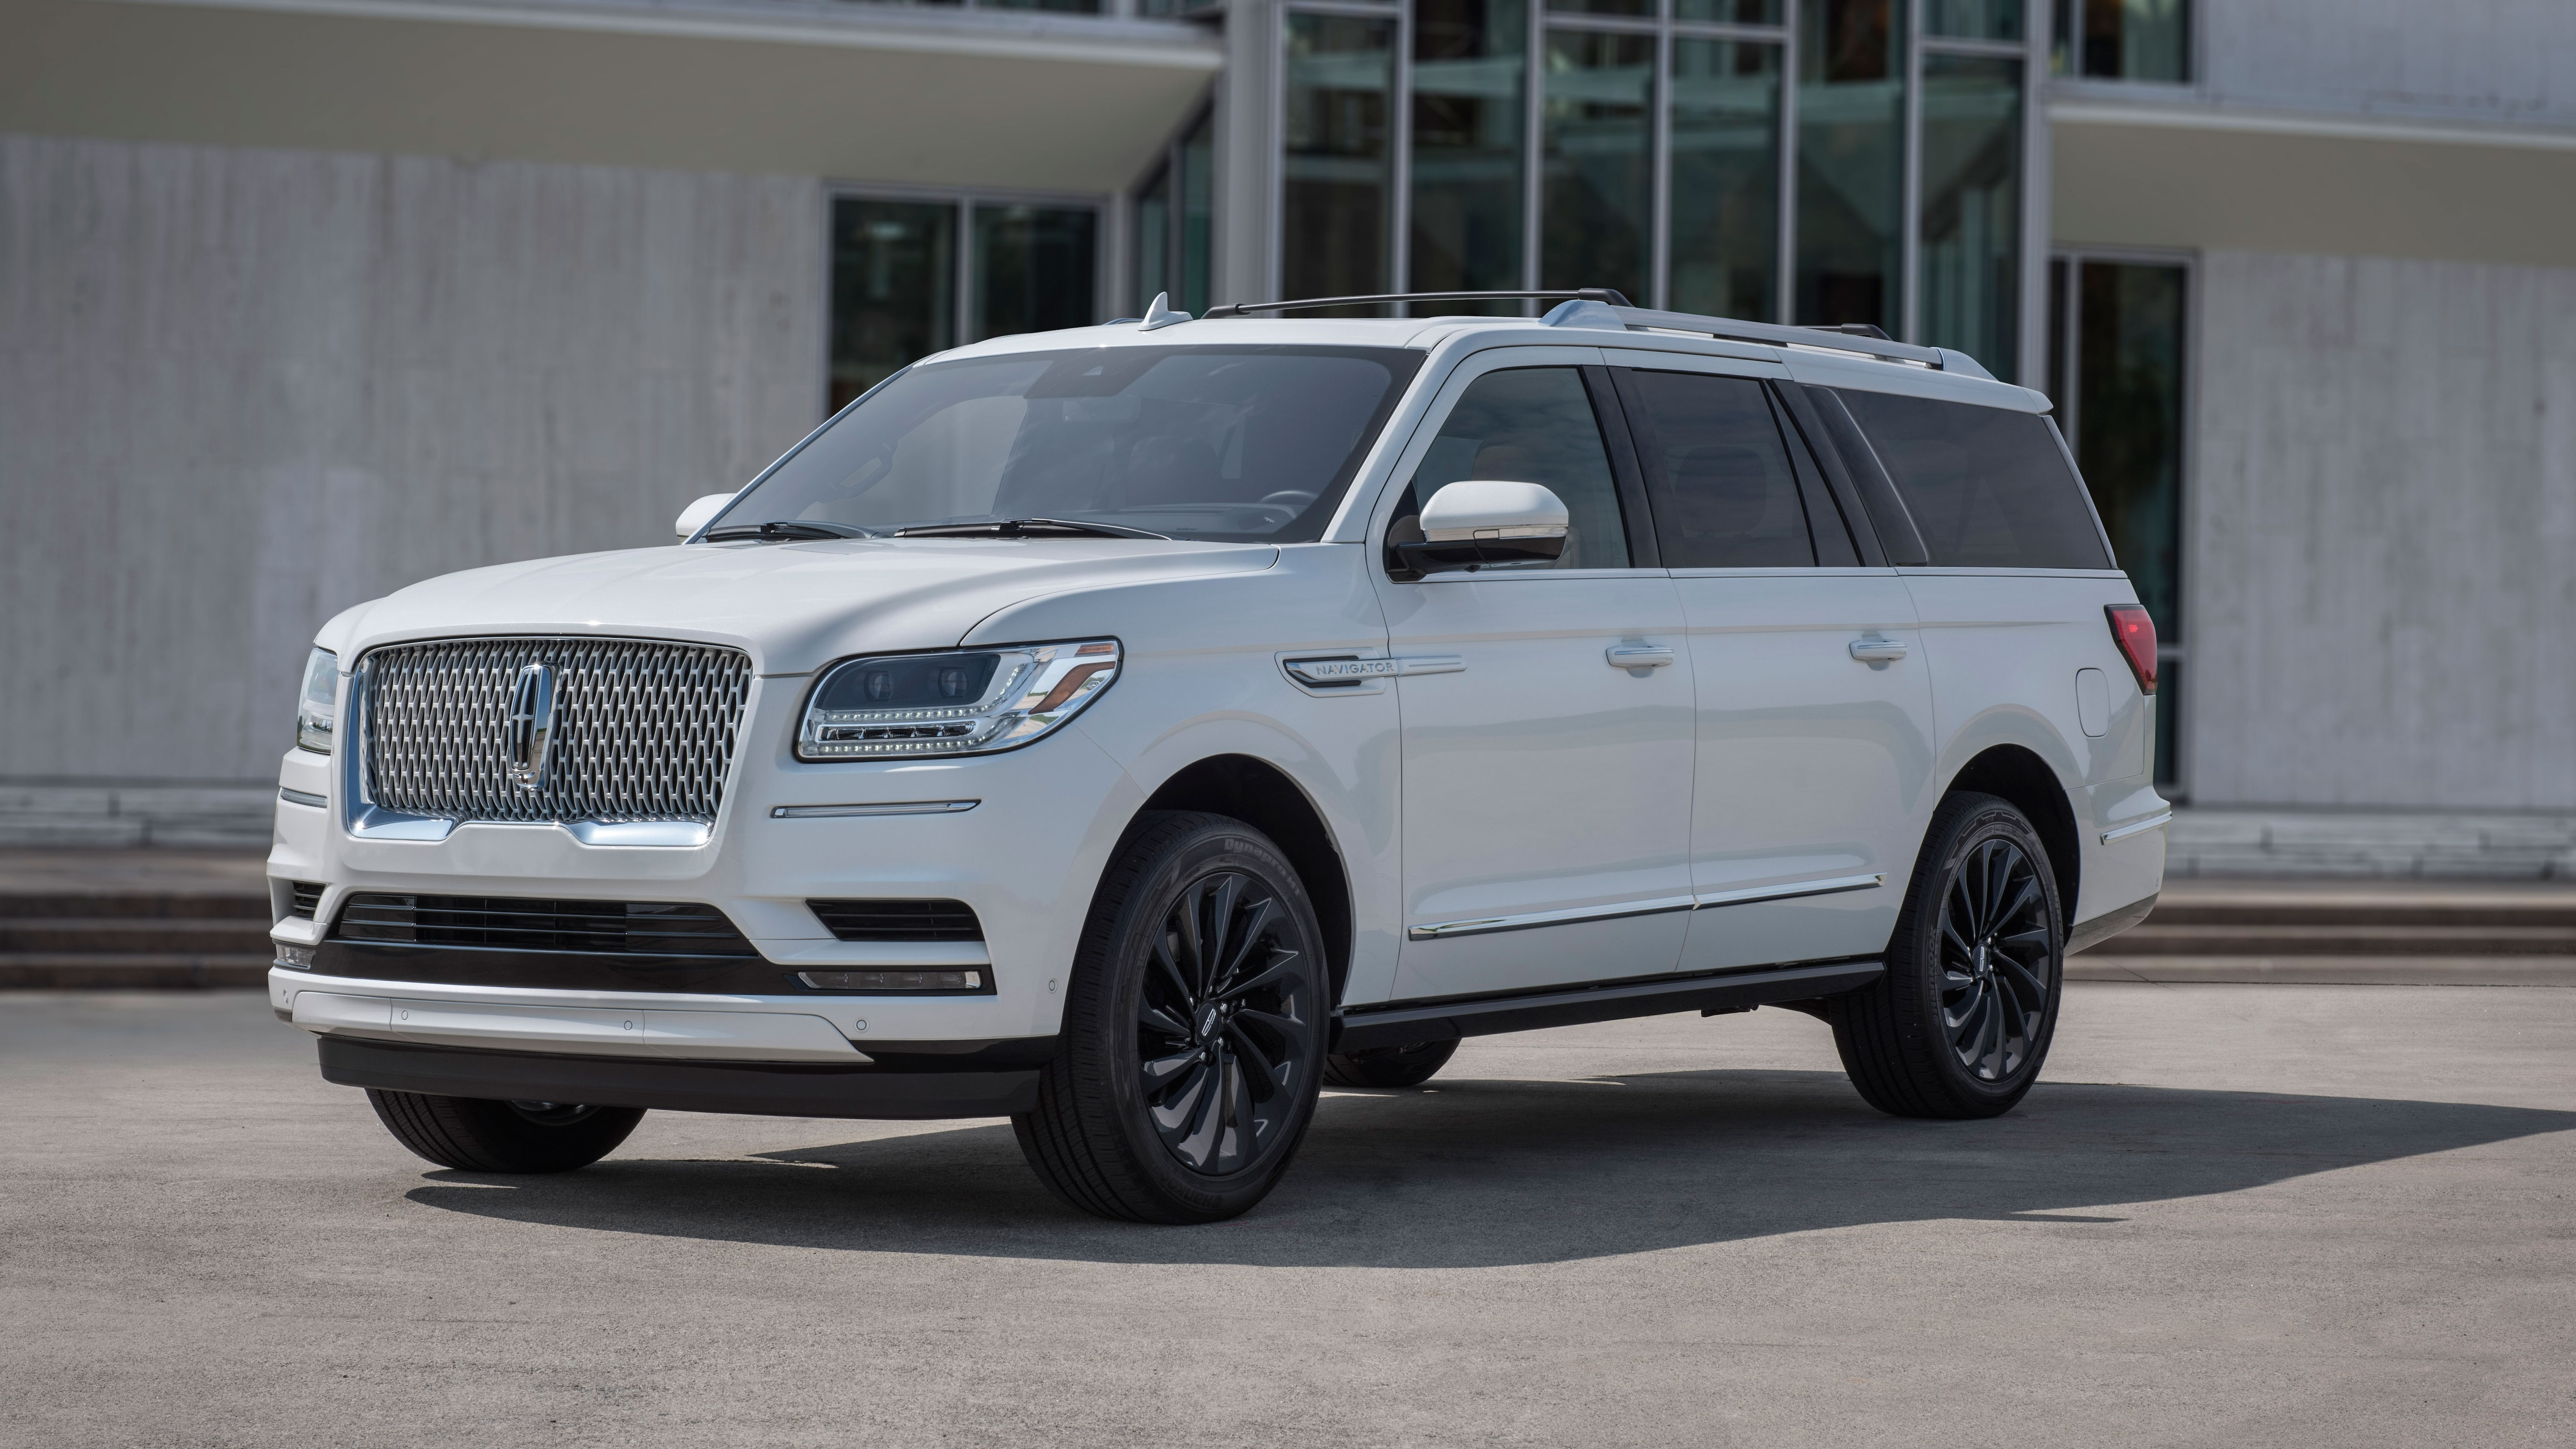 The 2020 Lincoln Navigator Gets All Monochrome Y Carsradars